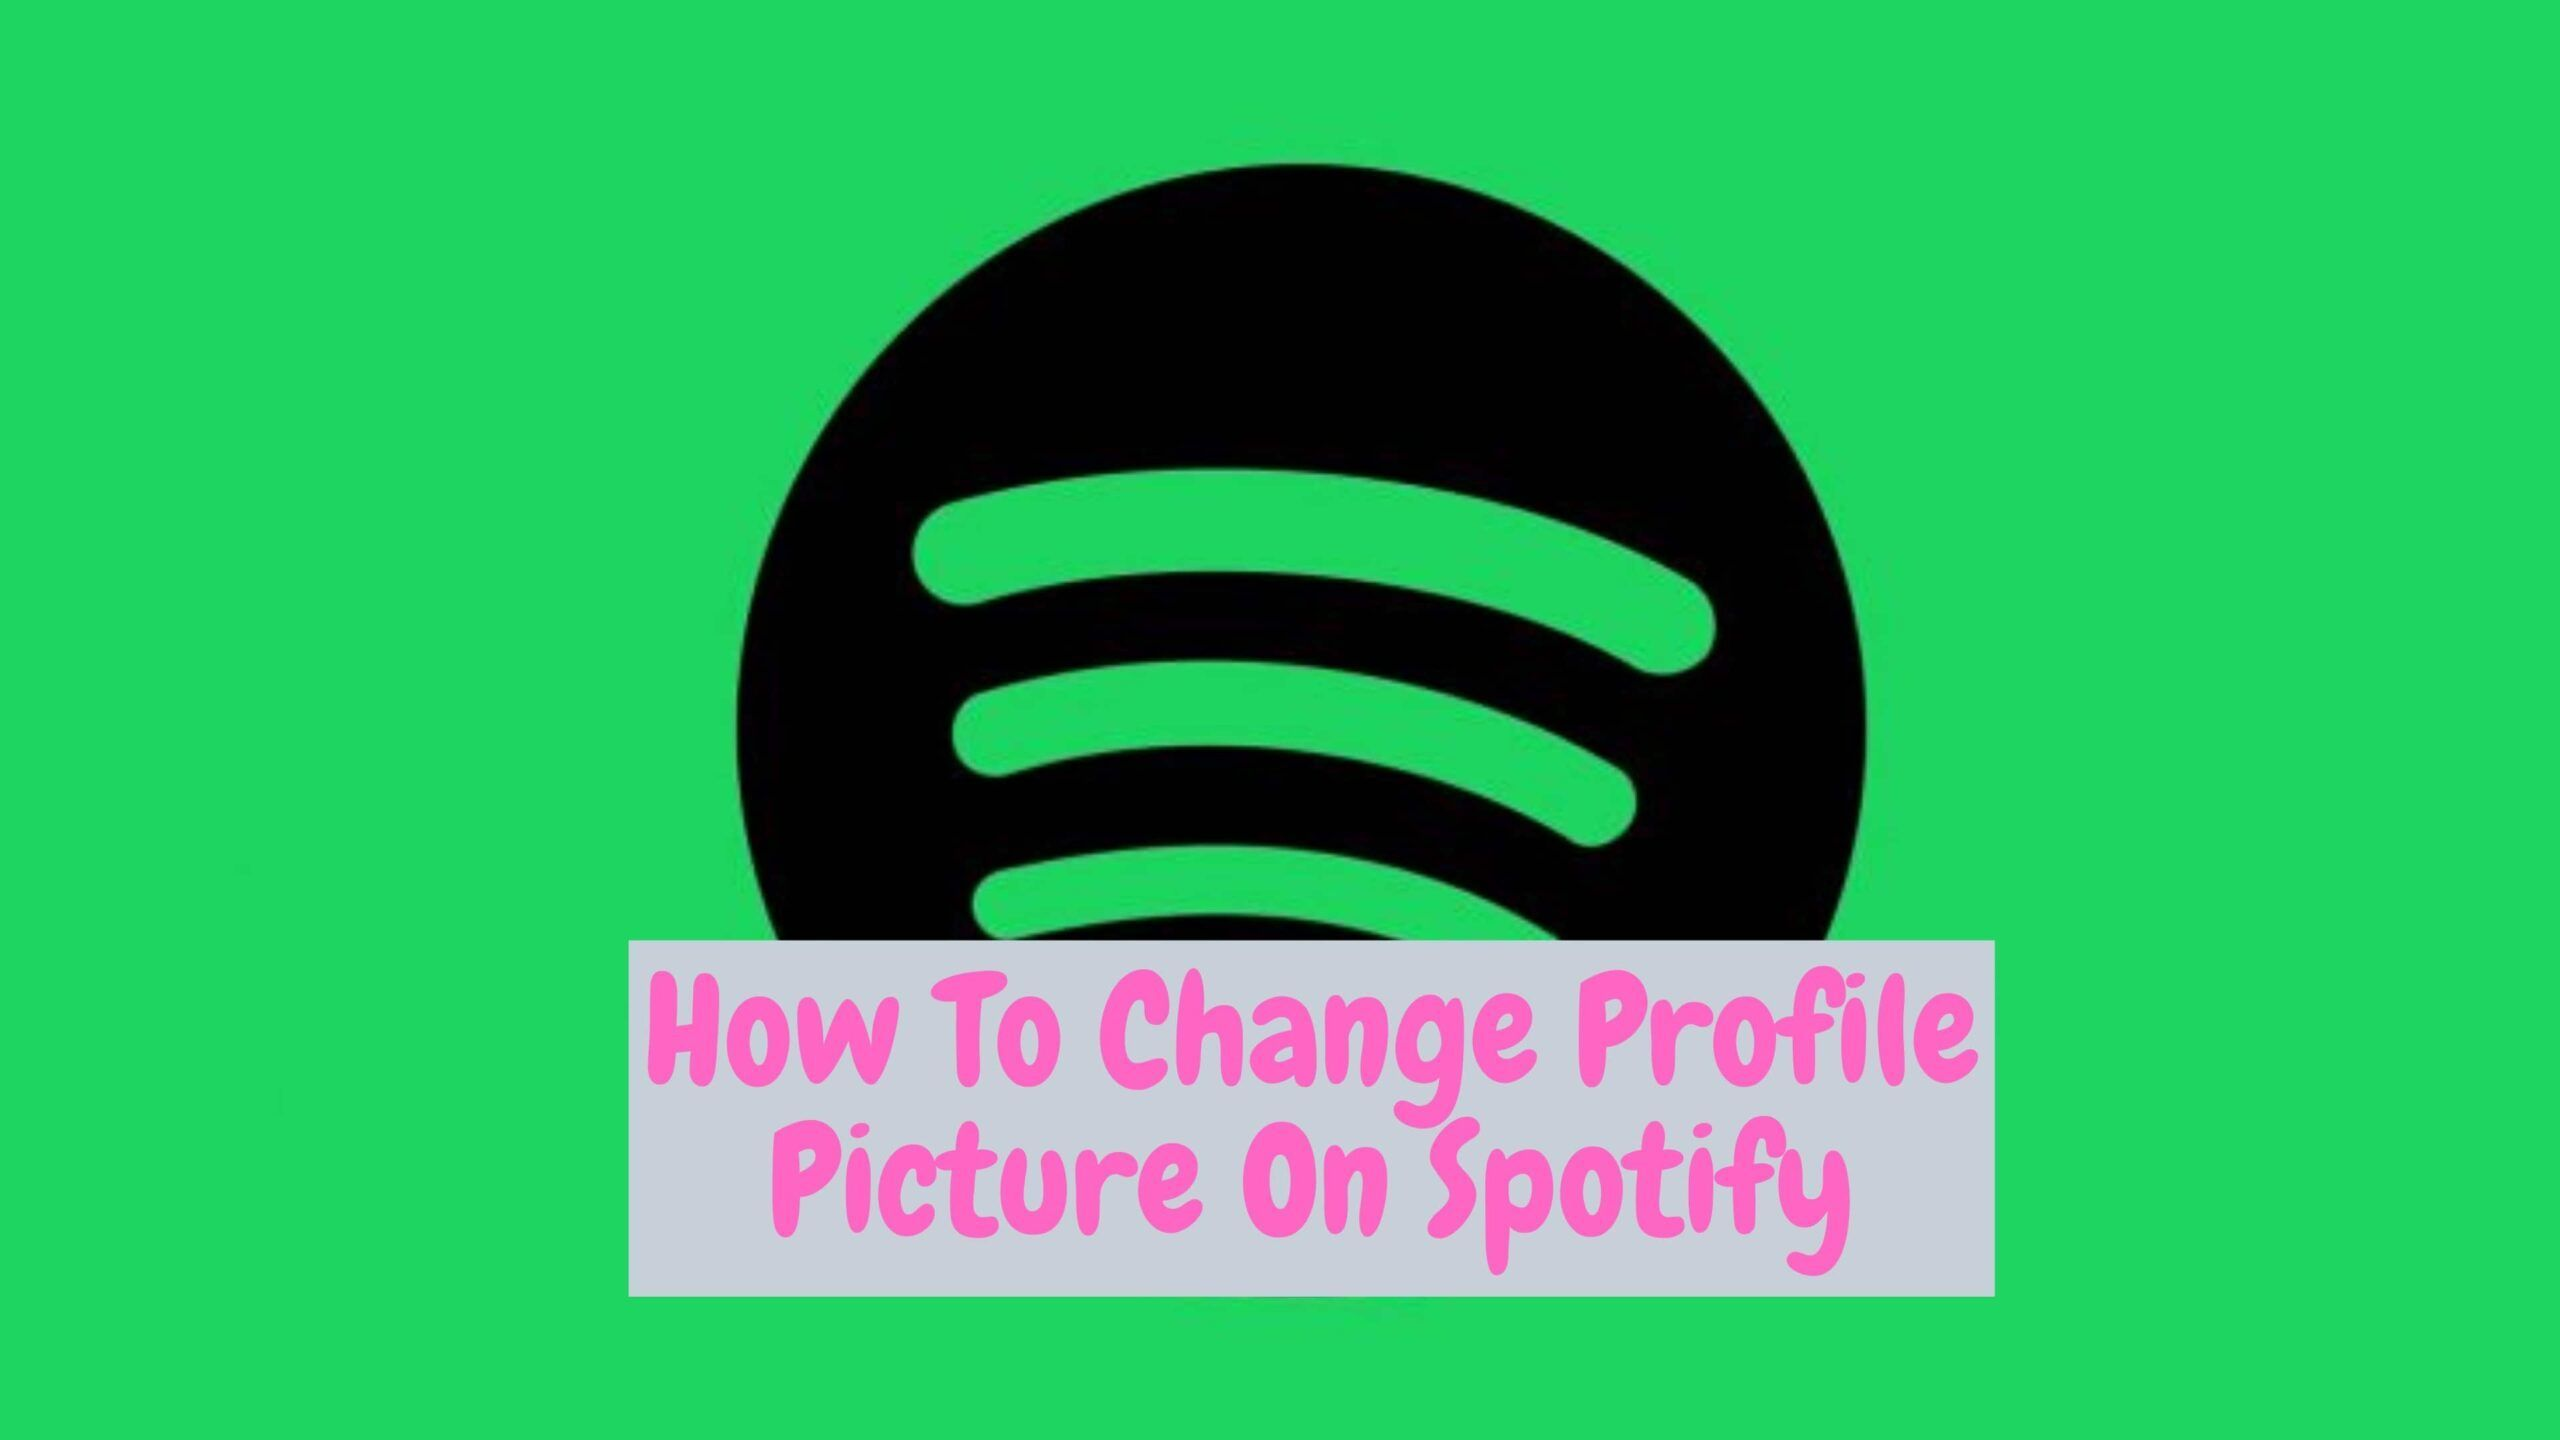 How To Change Profile Picture On Spotify